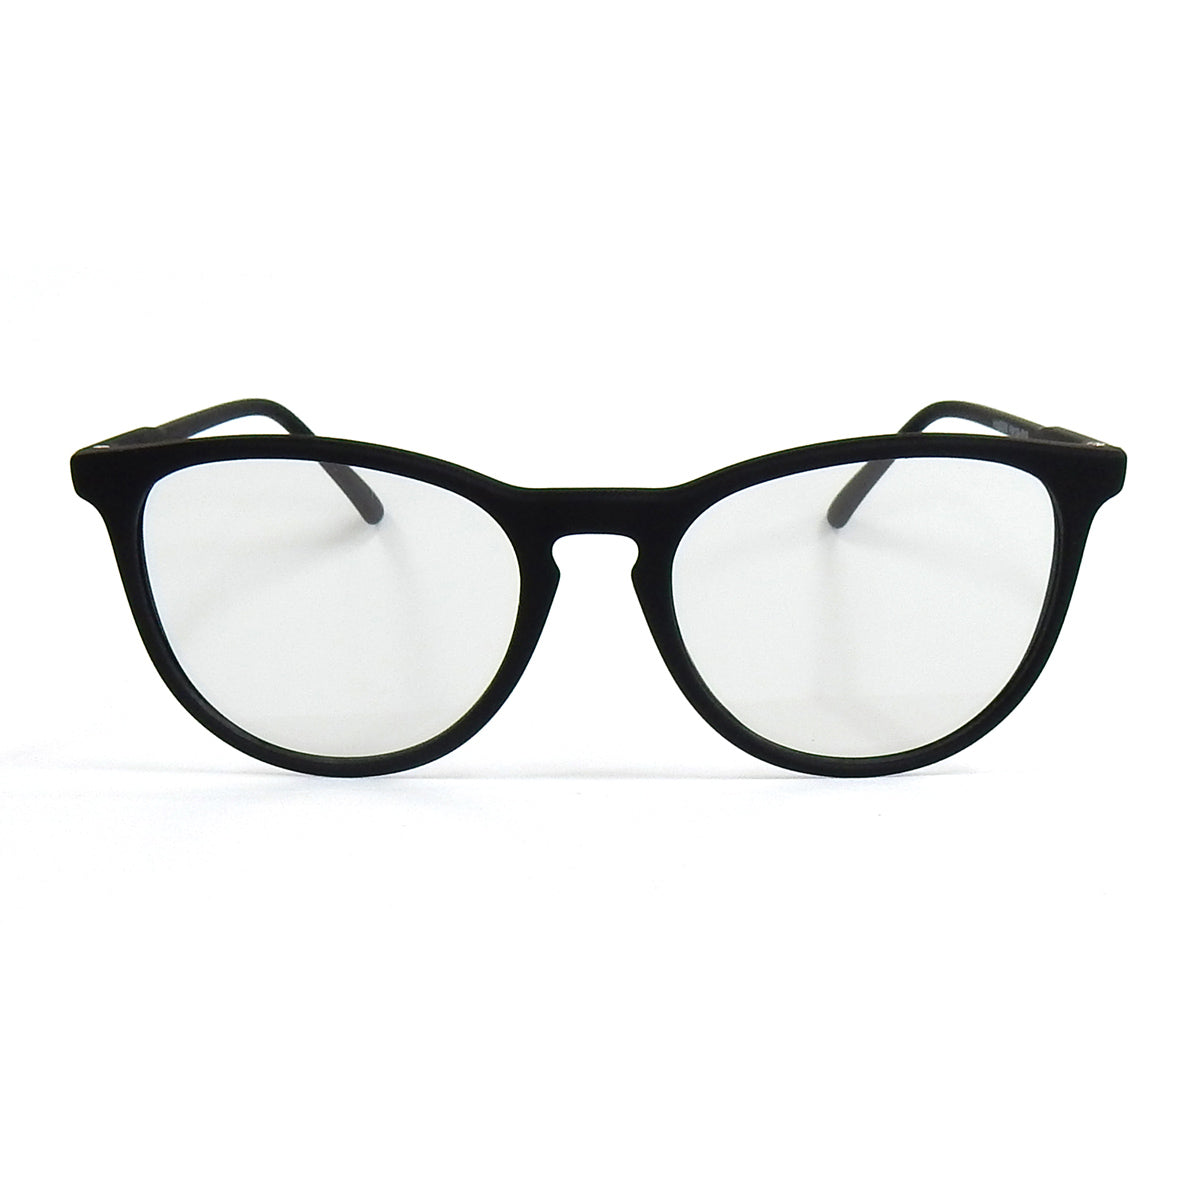 FENTON Black Soft x Clear lens (Limited Anti-Fog)